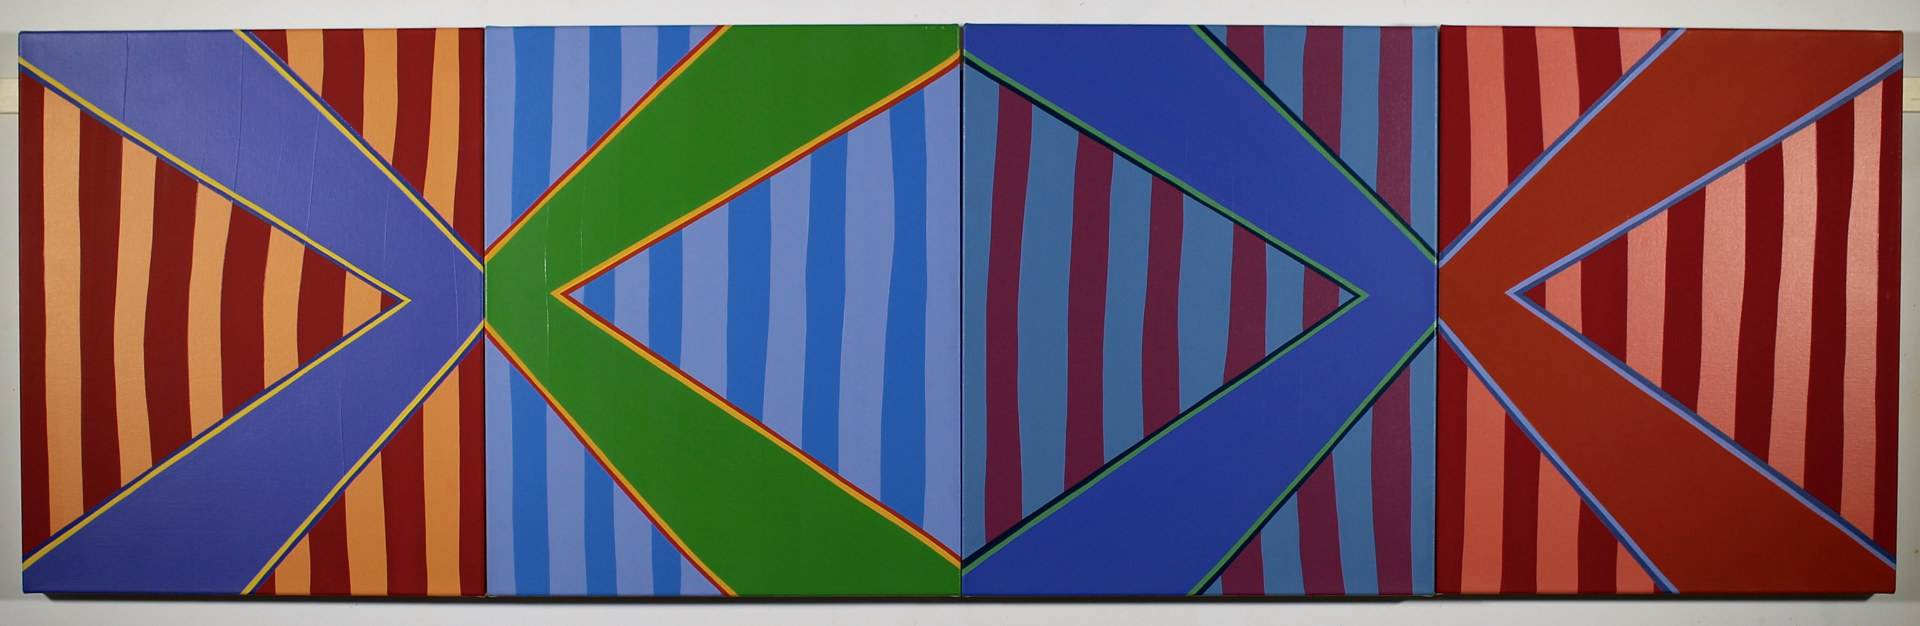 "Oil painting ""Stripe Set Quatrain"" 2015 by Christann Kennedy"